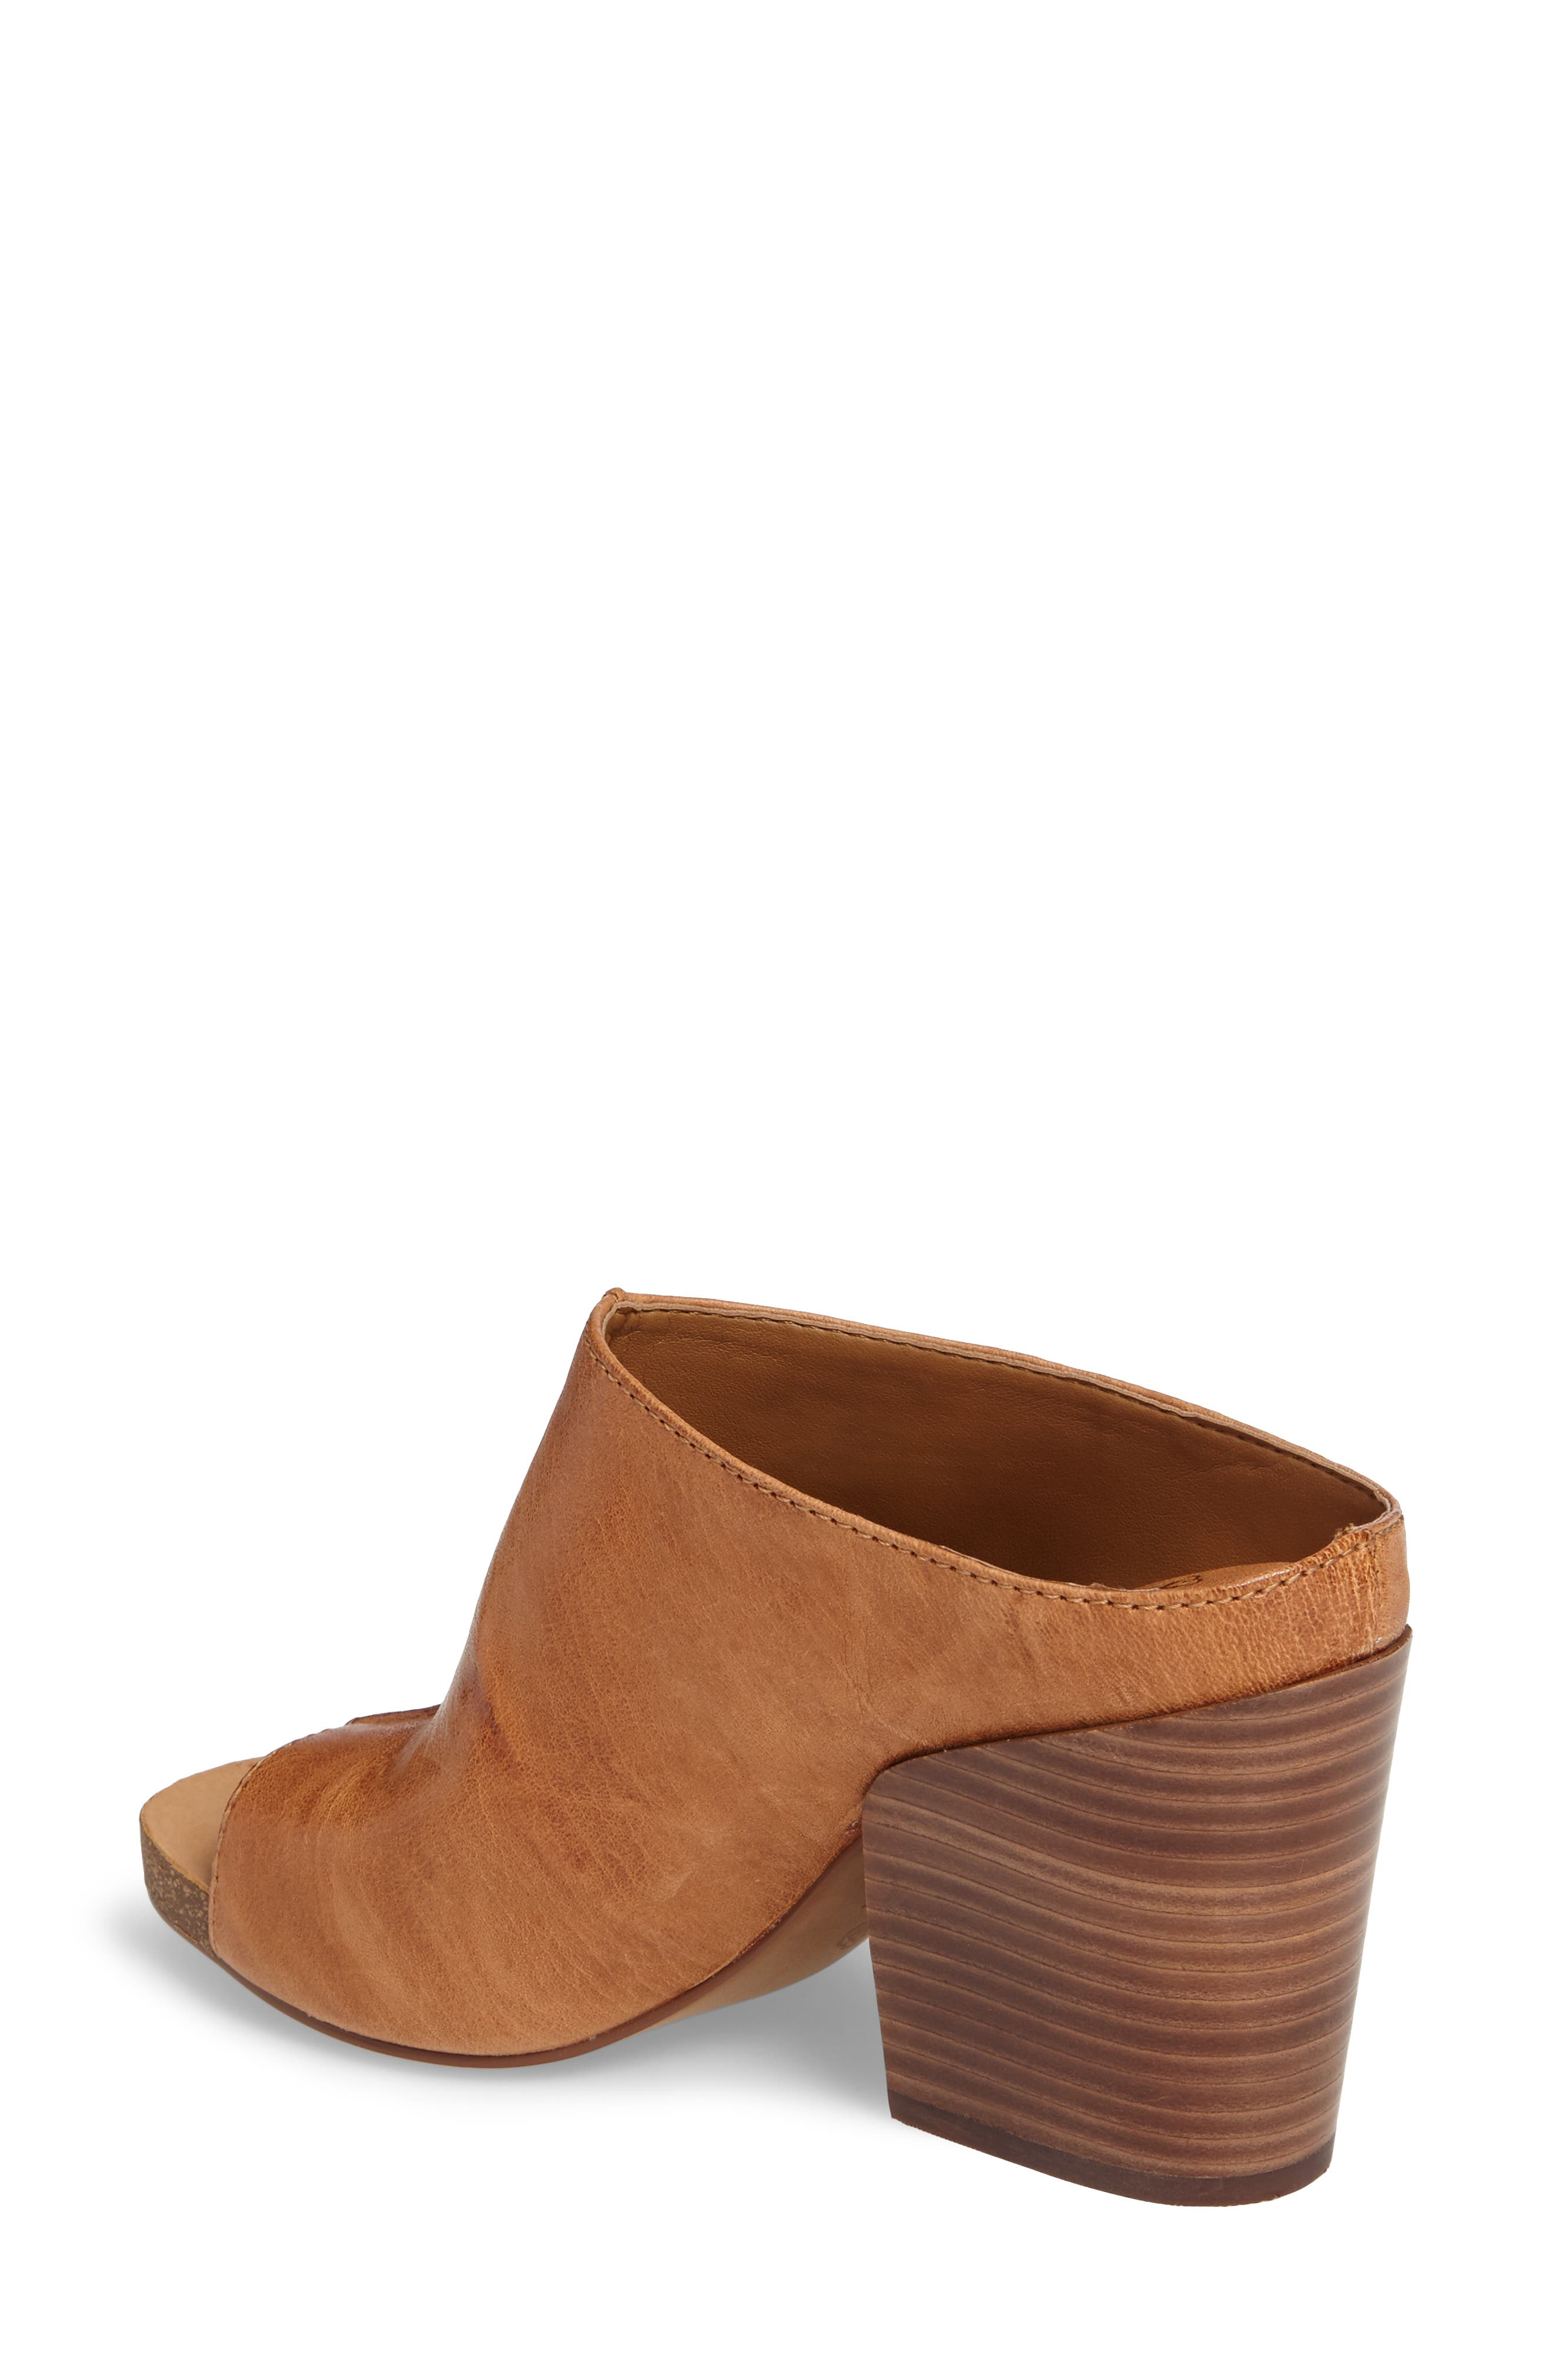 Isabella Open Toe Mule,                             Alternate thumbnail 2, color,                             Luggage Leather